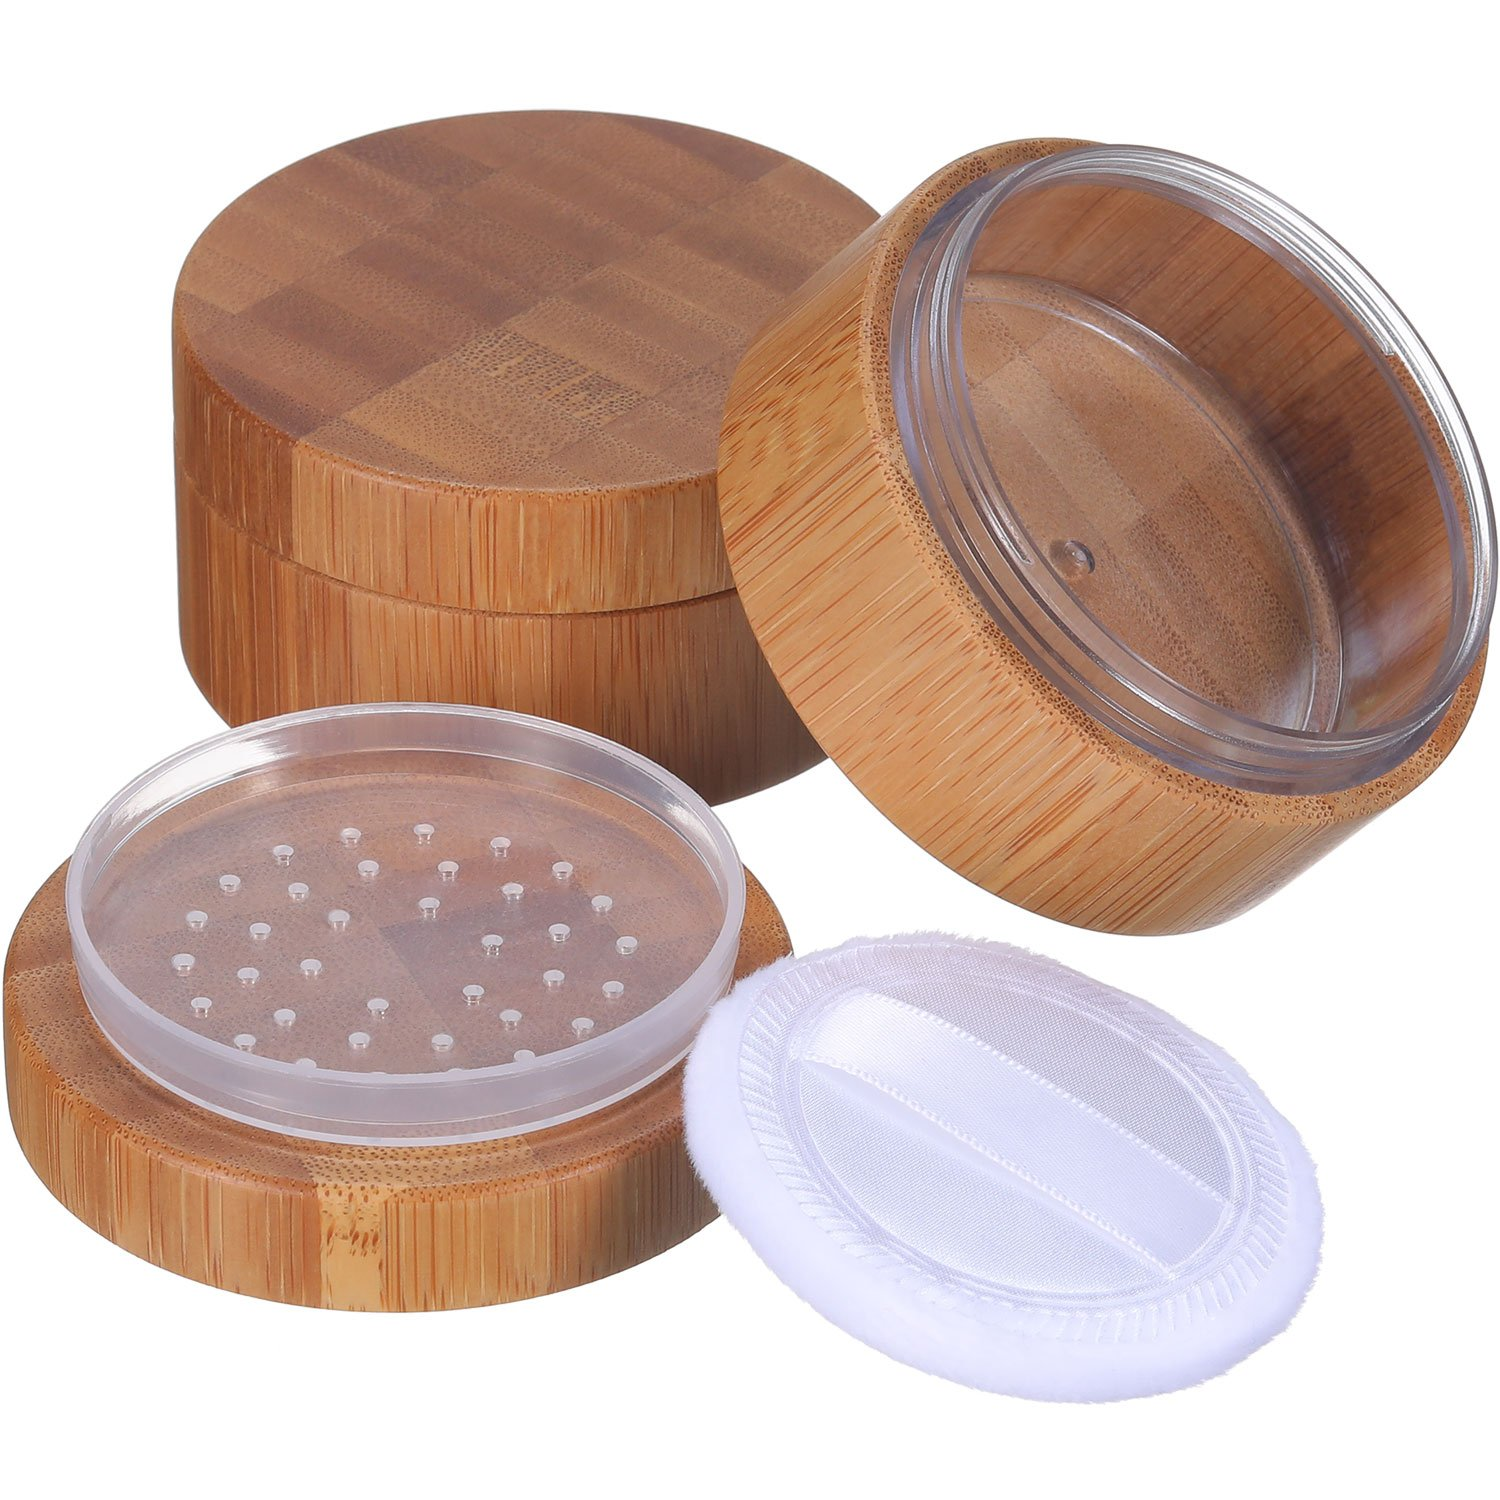 Frienda 2 Pack 30 ml Empty Powder Case Bamboo Cosmetic Make-up Loose Powder Box Case Container Holder with Sifter Lids and Powder Puff